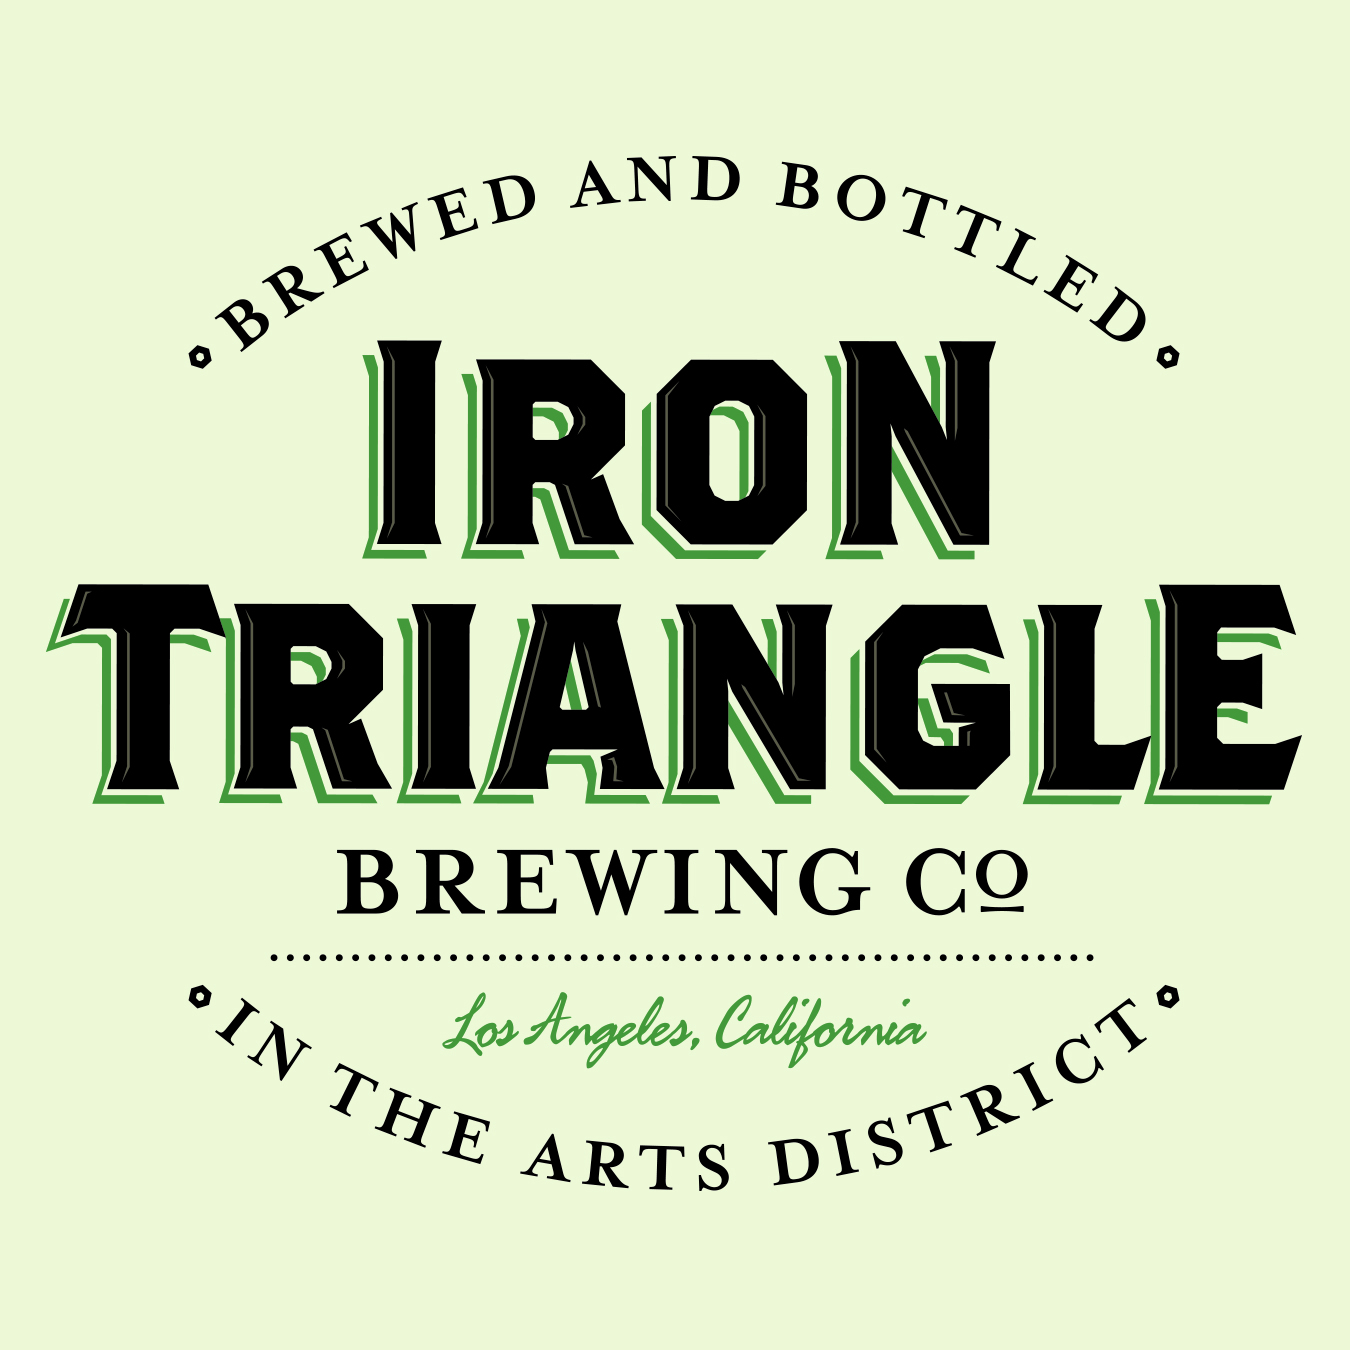 Iron Triangle Brewery